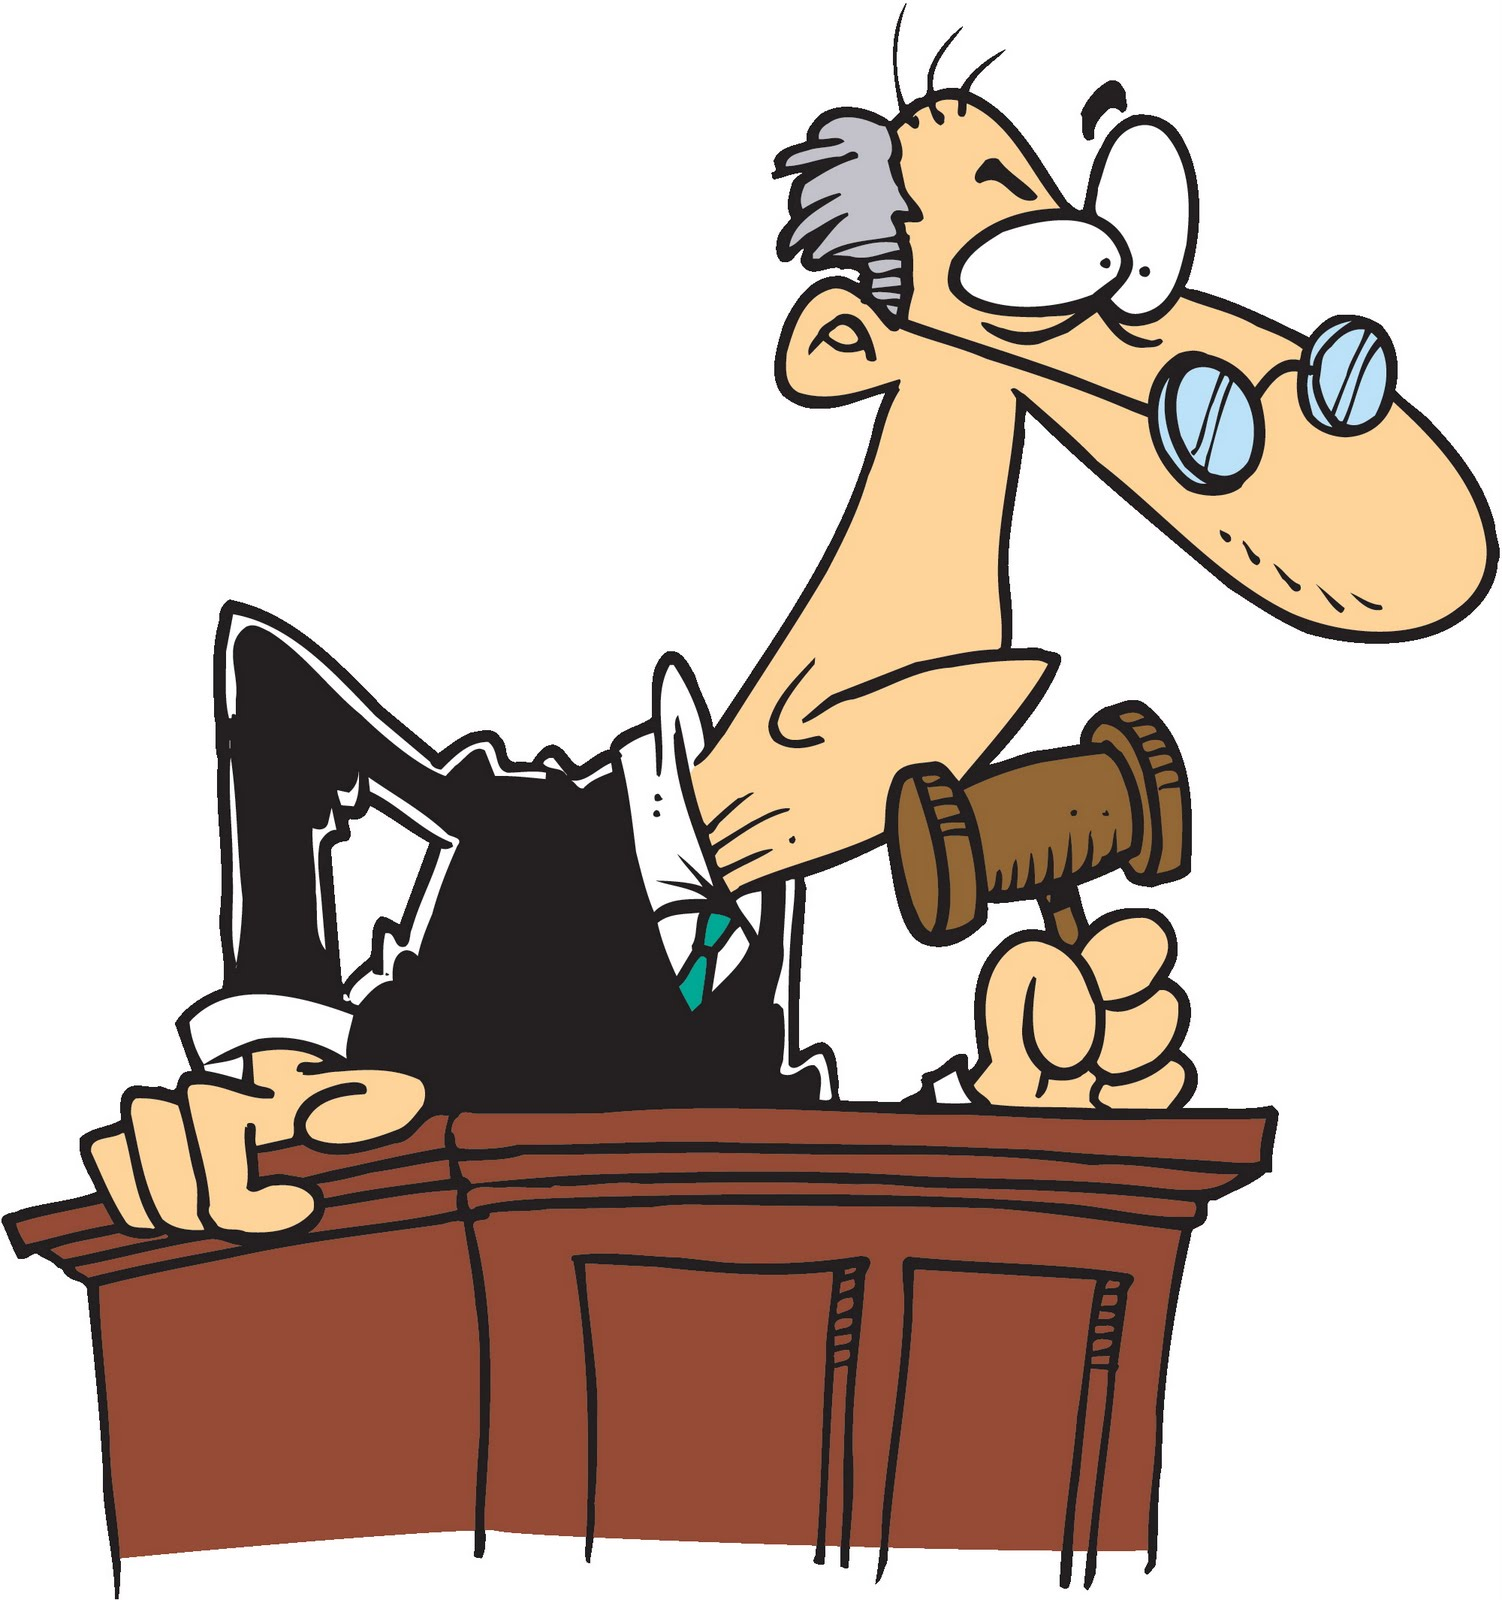 Judge In Courtroom Clipart Description Of The free image.